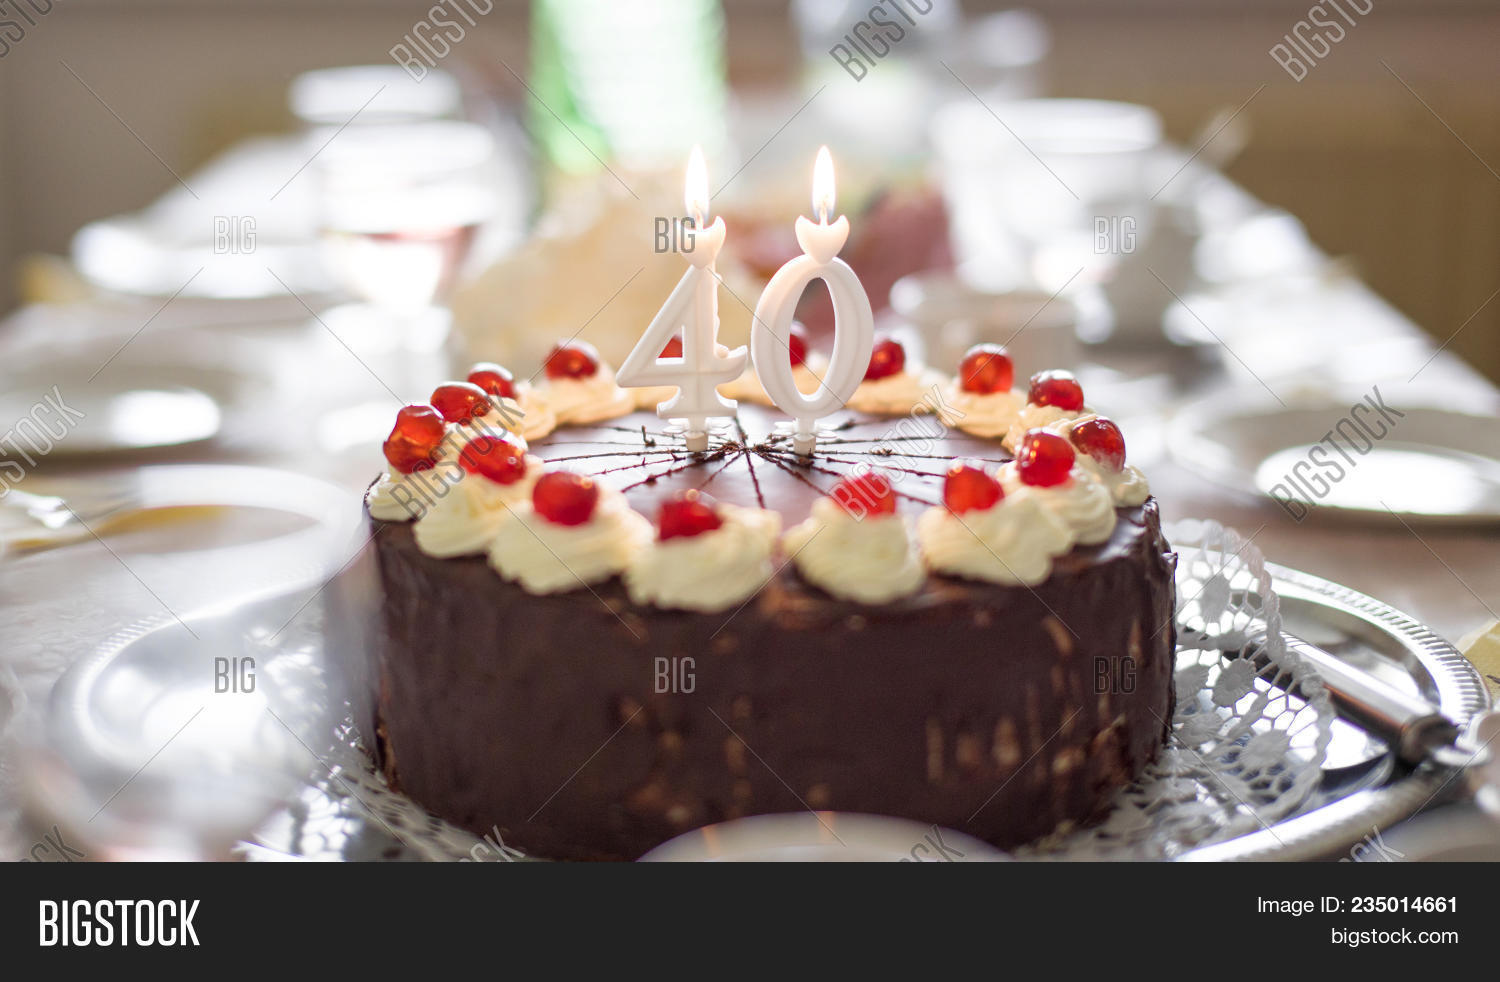 Happy 40th Birthday Cake Candles On Image Photo Bigstock